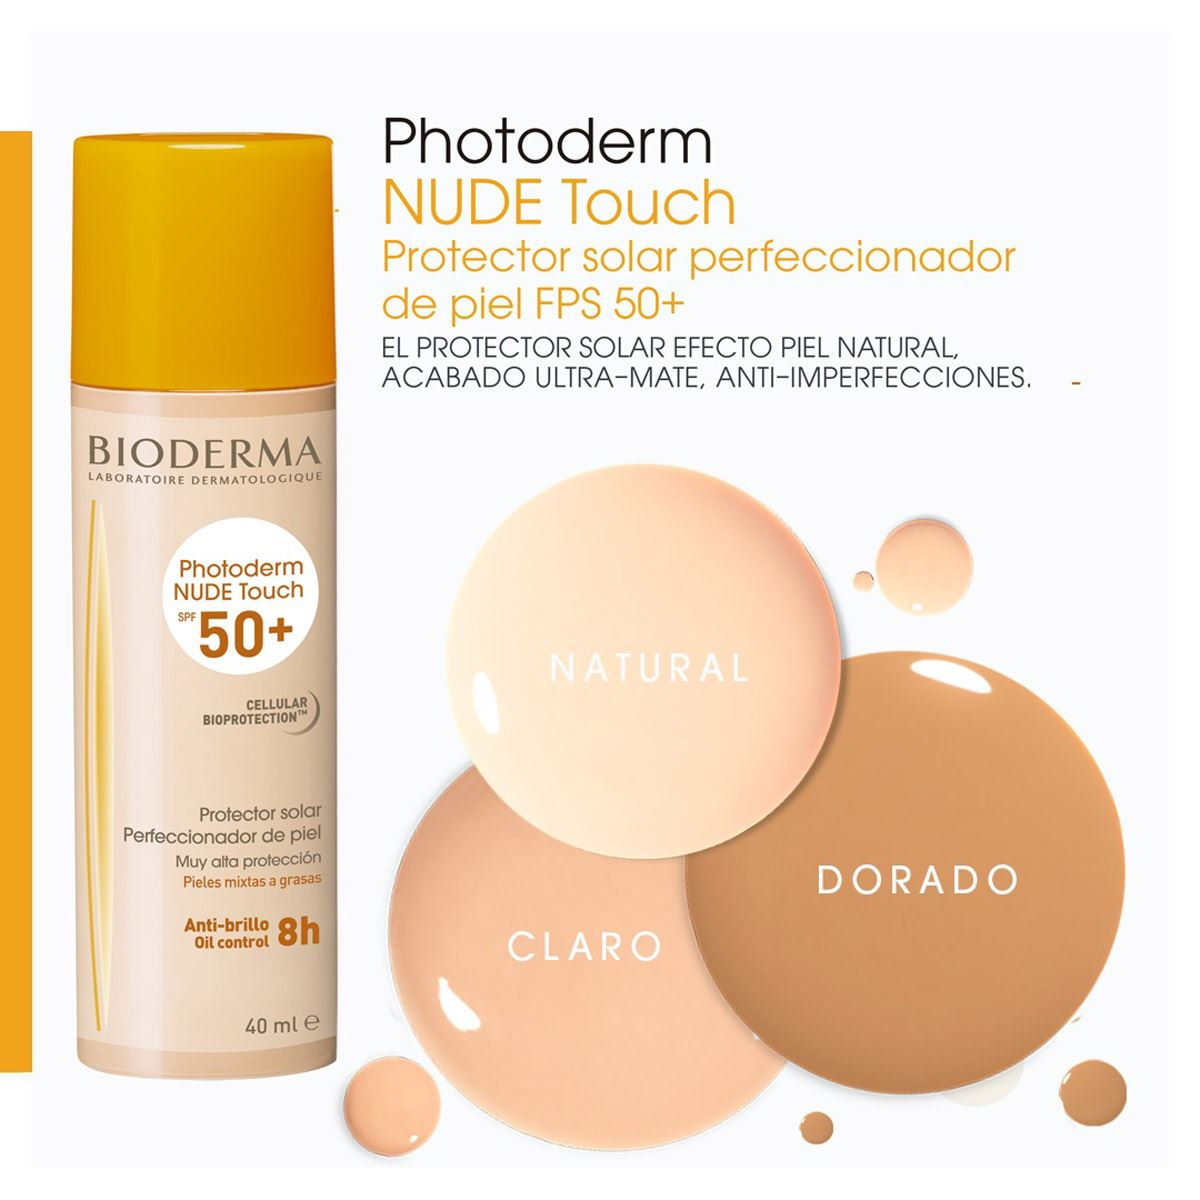 Kit photoderm nude touch natural spf 50+ y sébium gel 100 ml  - Sanborns